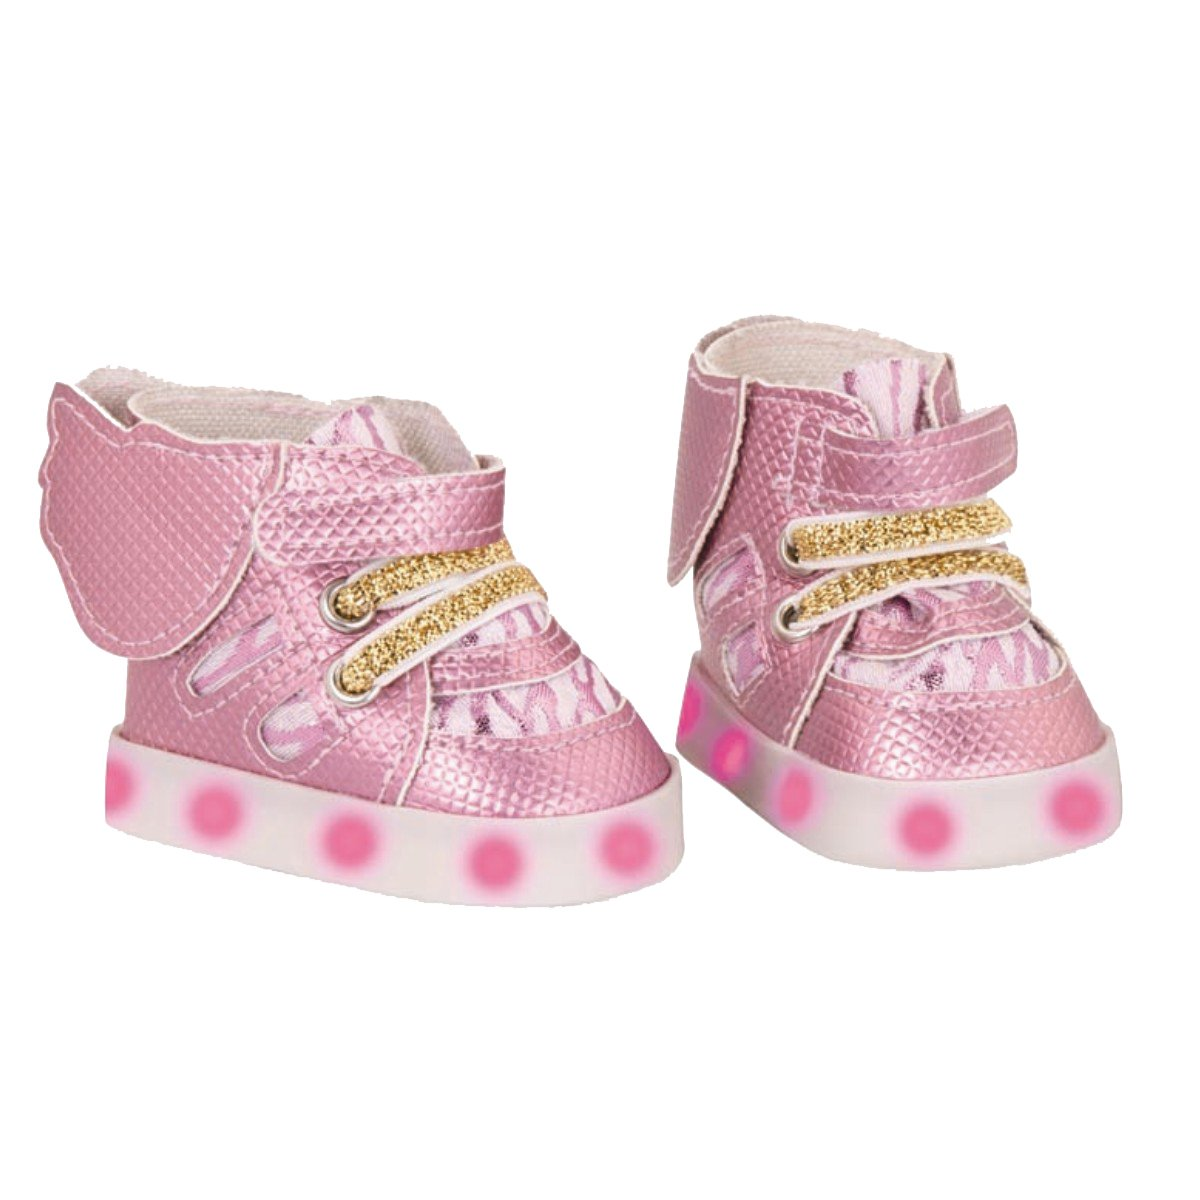 Our Generation - Pink shoes with light (737463)